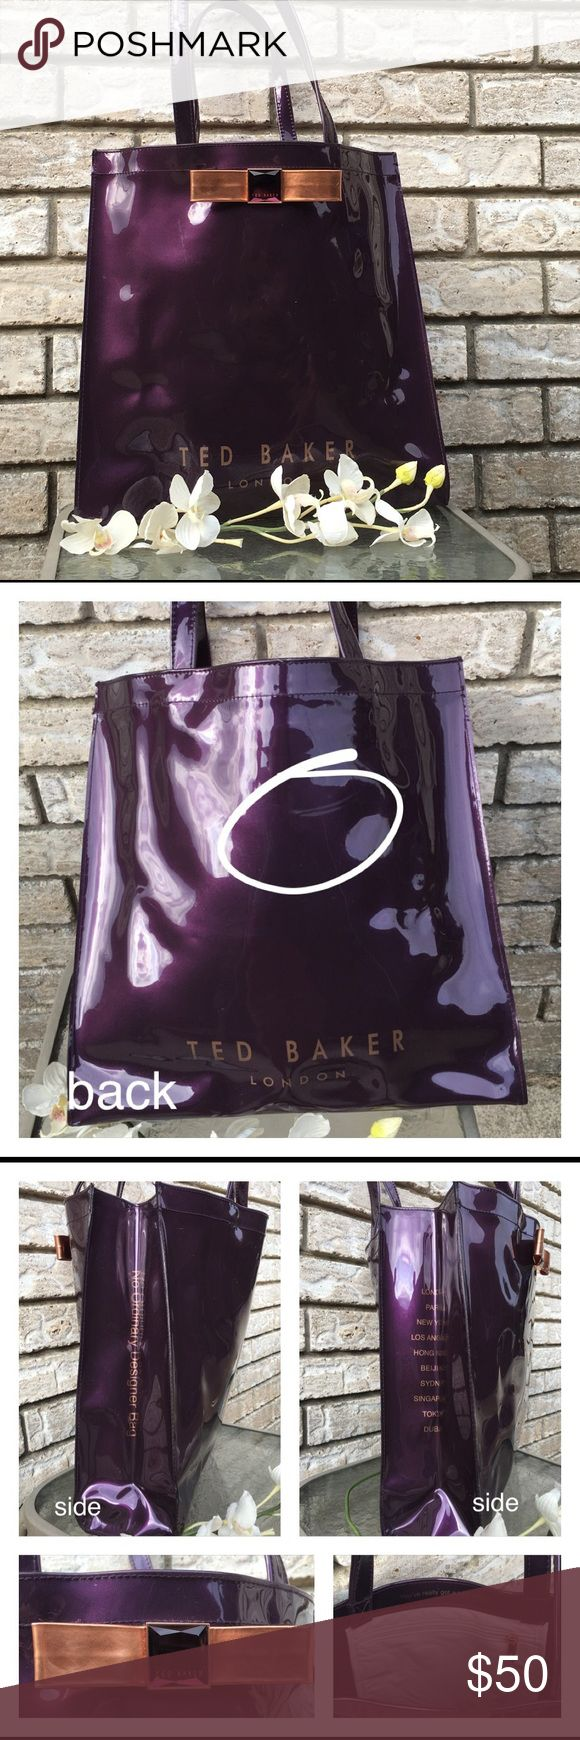 """Large Ted Baker vinyl tote bag Ted Baker large tote bag in pretty good condition for the most part. Does have a scuff on the back side (2nd picture) and some light scuffs here and there; nothing major that takes away from it. This is a large tote bag that will allow you to carry quite a bit. Dimensions are as follow.. H 14.5"""" x W 14.5"""" x D 4.5"""" approx. strap drop approx 9"""". Ted Baker Bags Totes"""